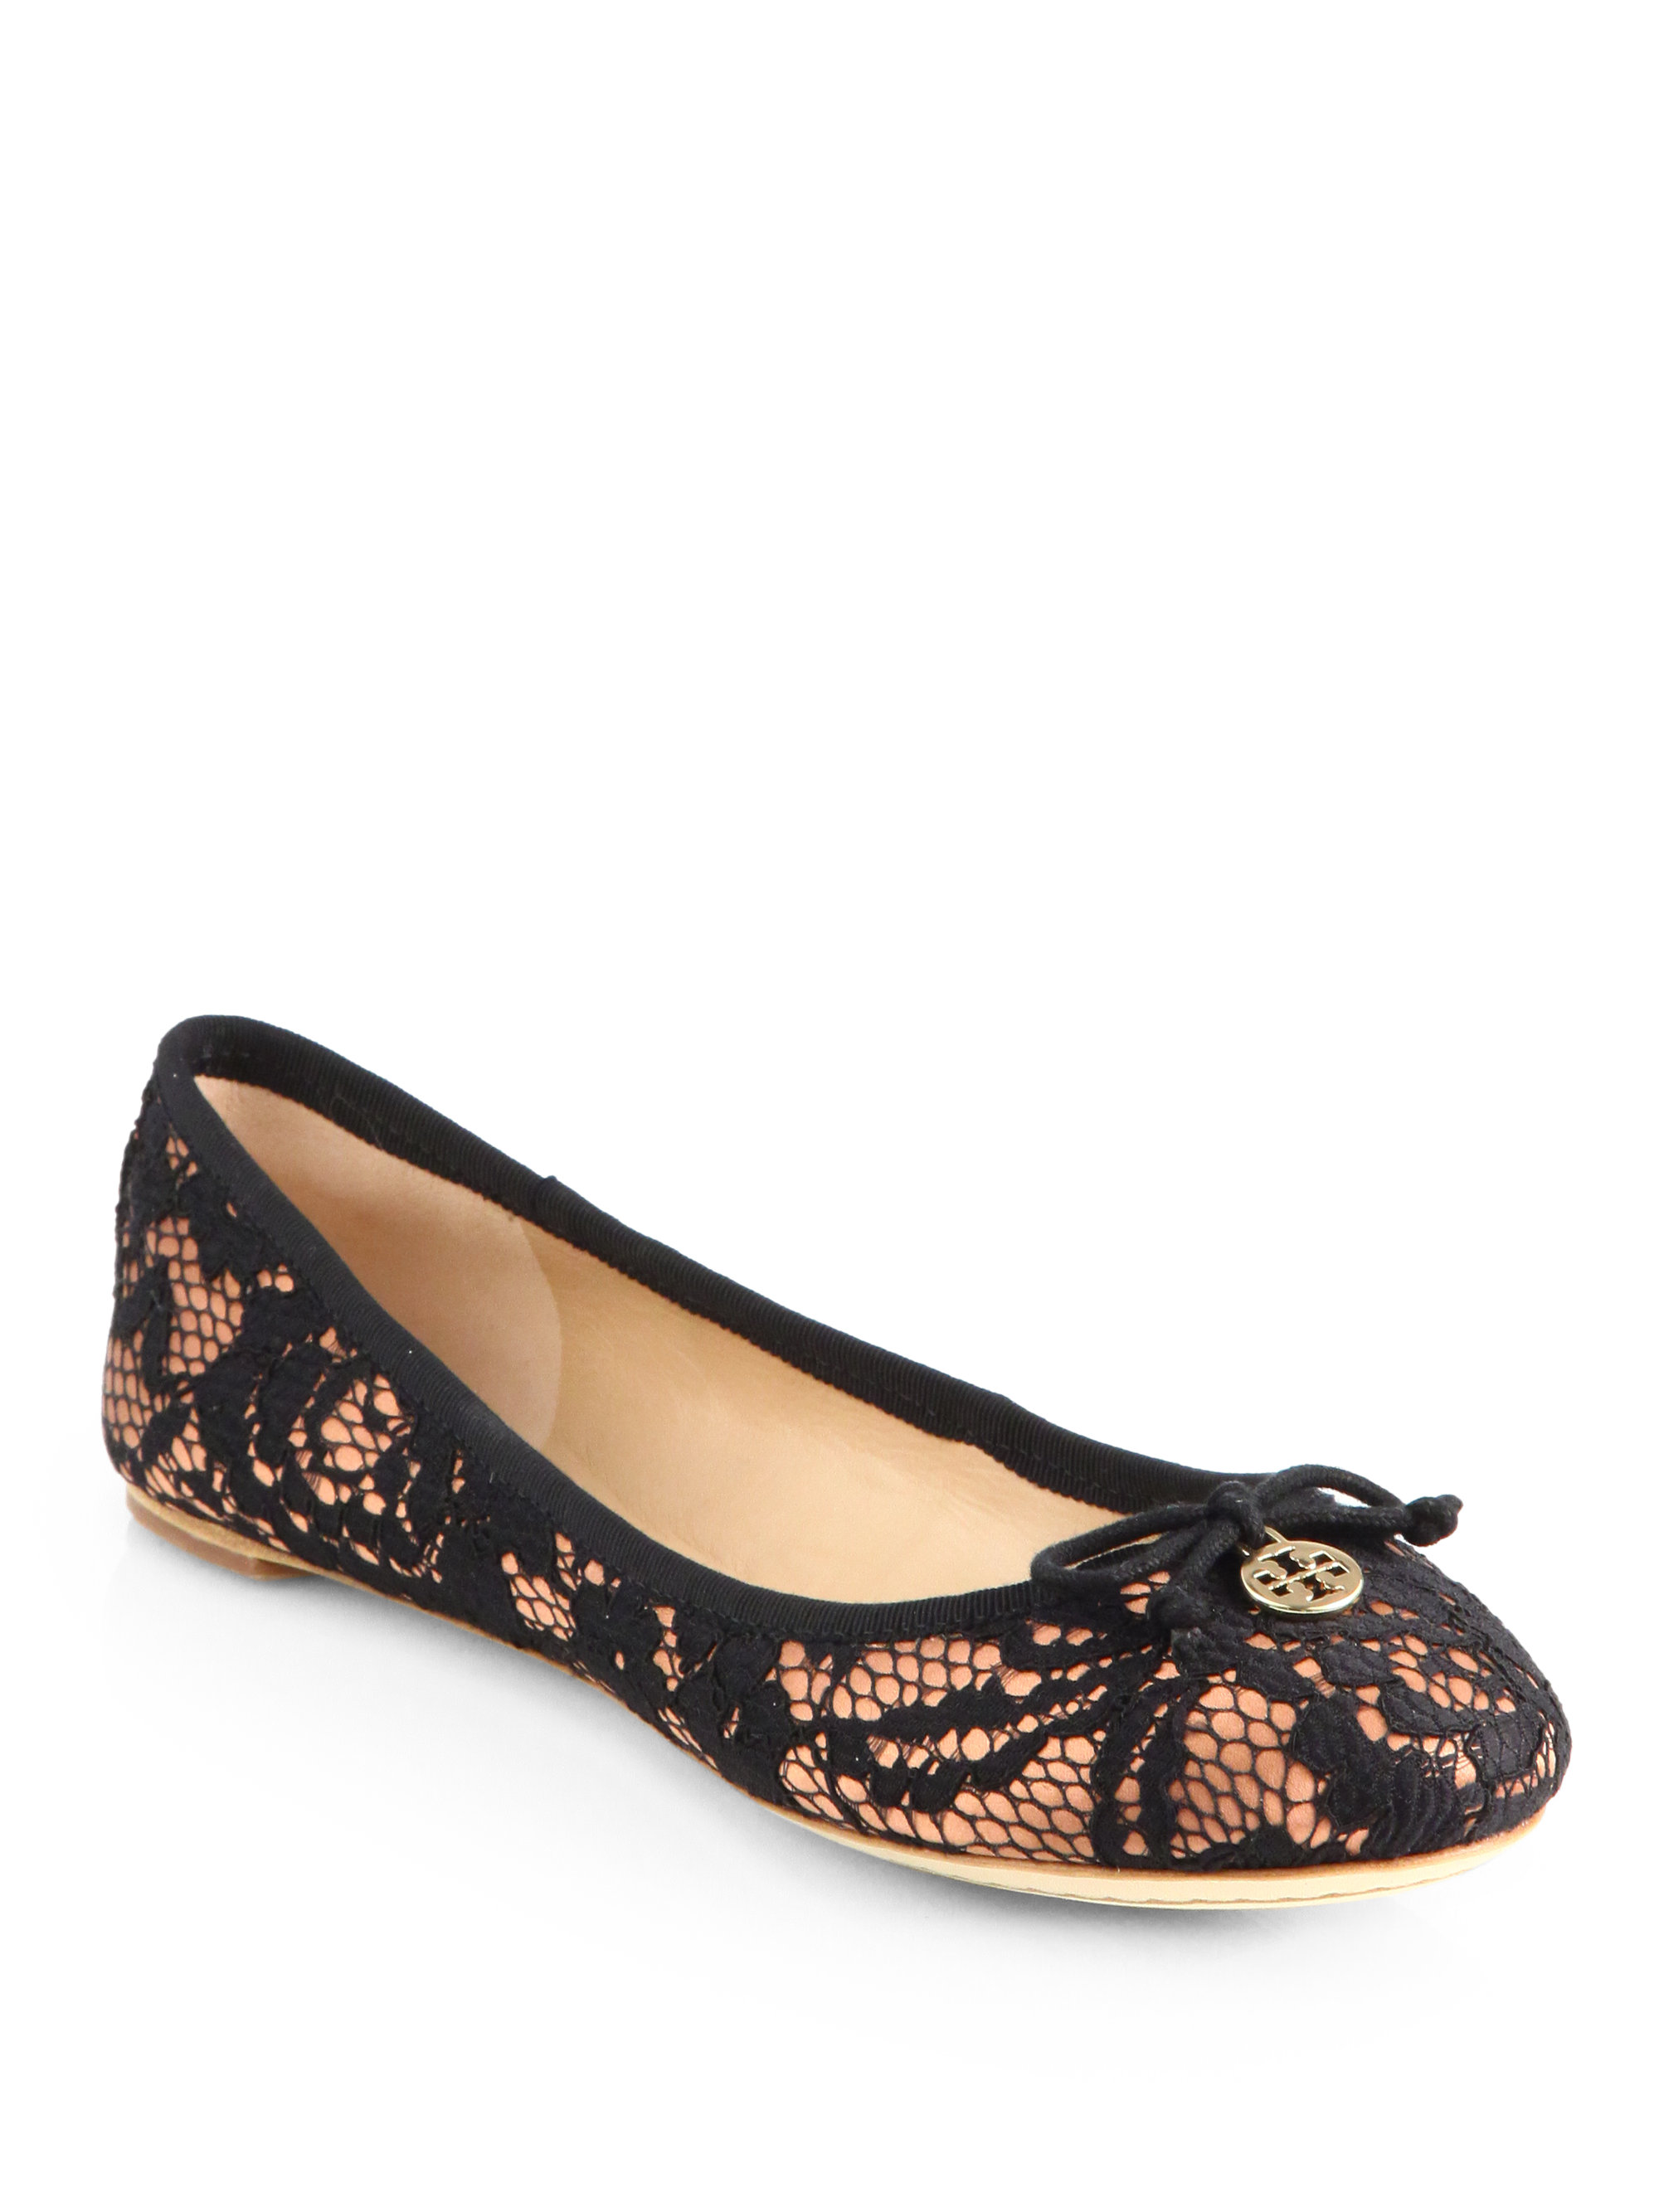 Tory Burch Chelsea Lacecovered Silk Ballet Flats in Black